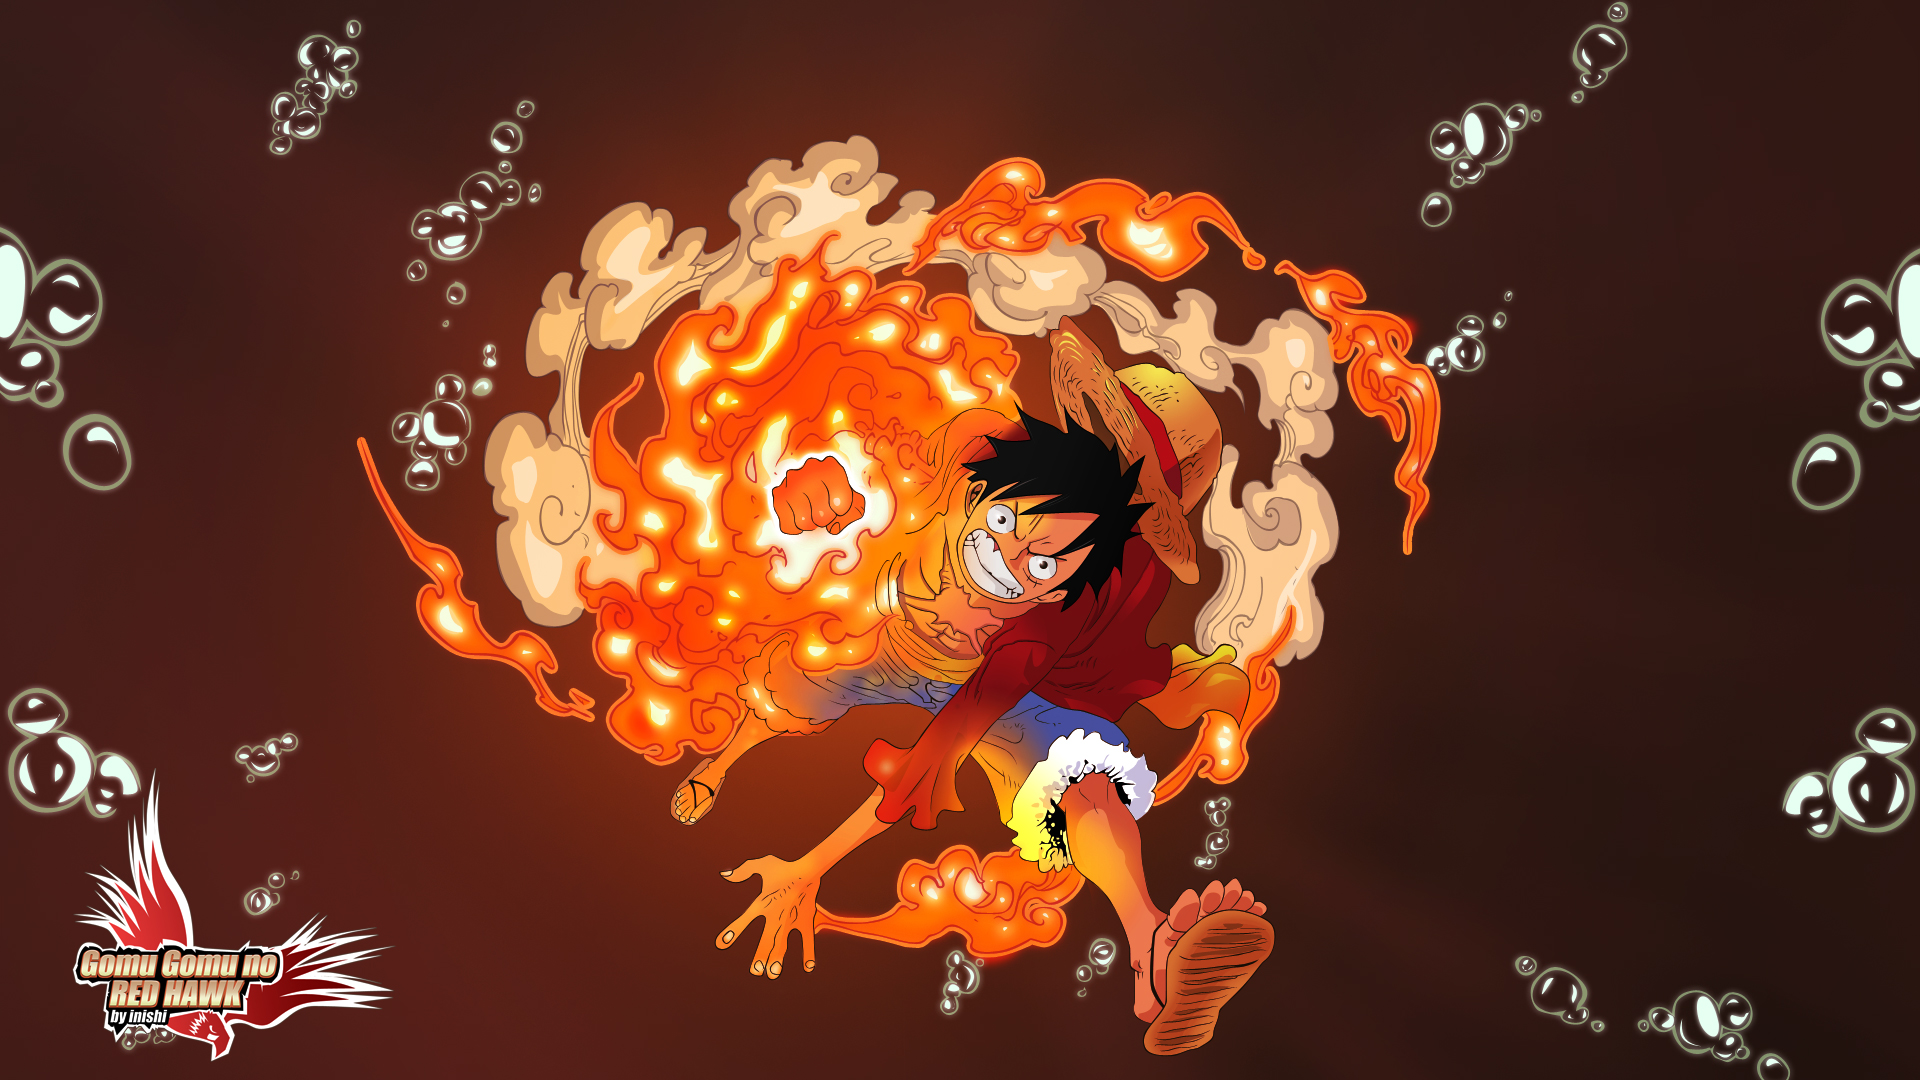 monkey d. luffy - one piece - hd wallpaper #1277095 - zerochan anime